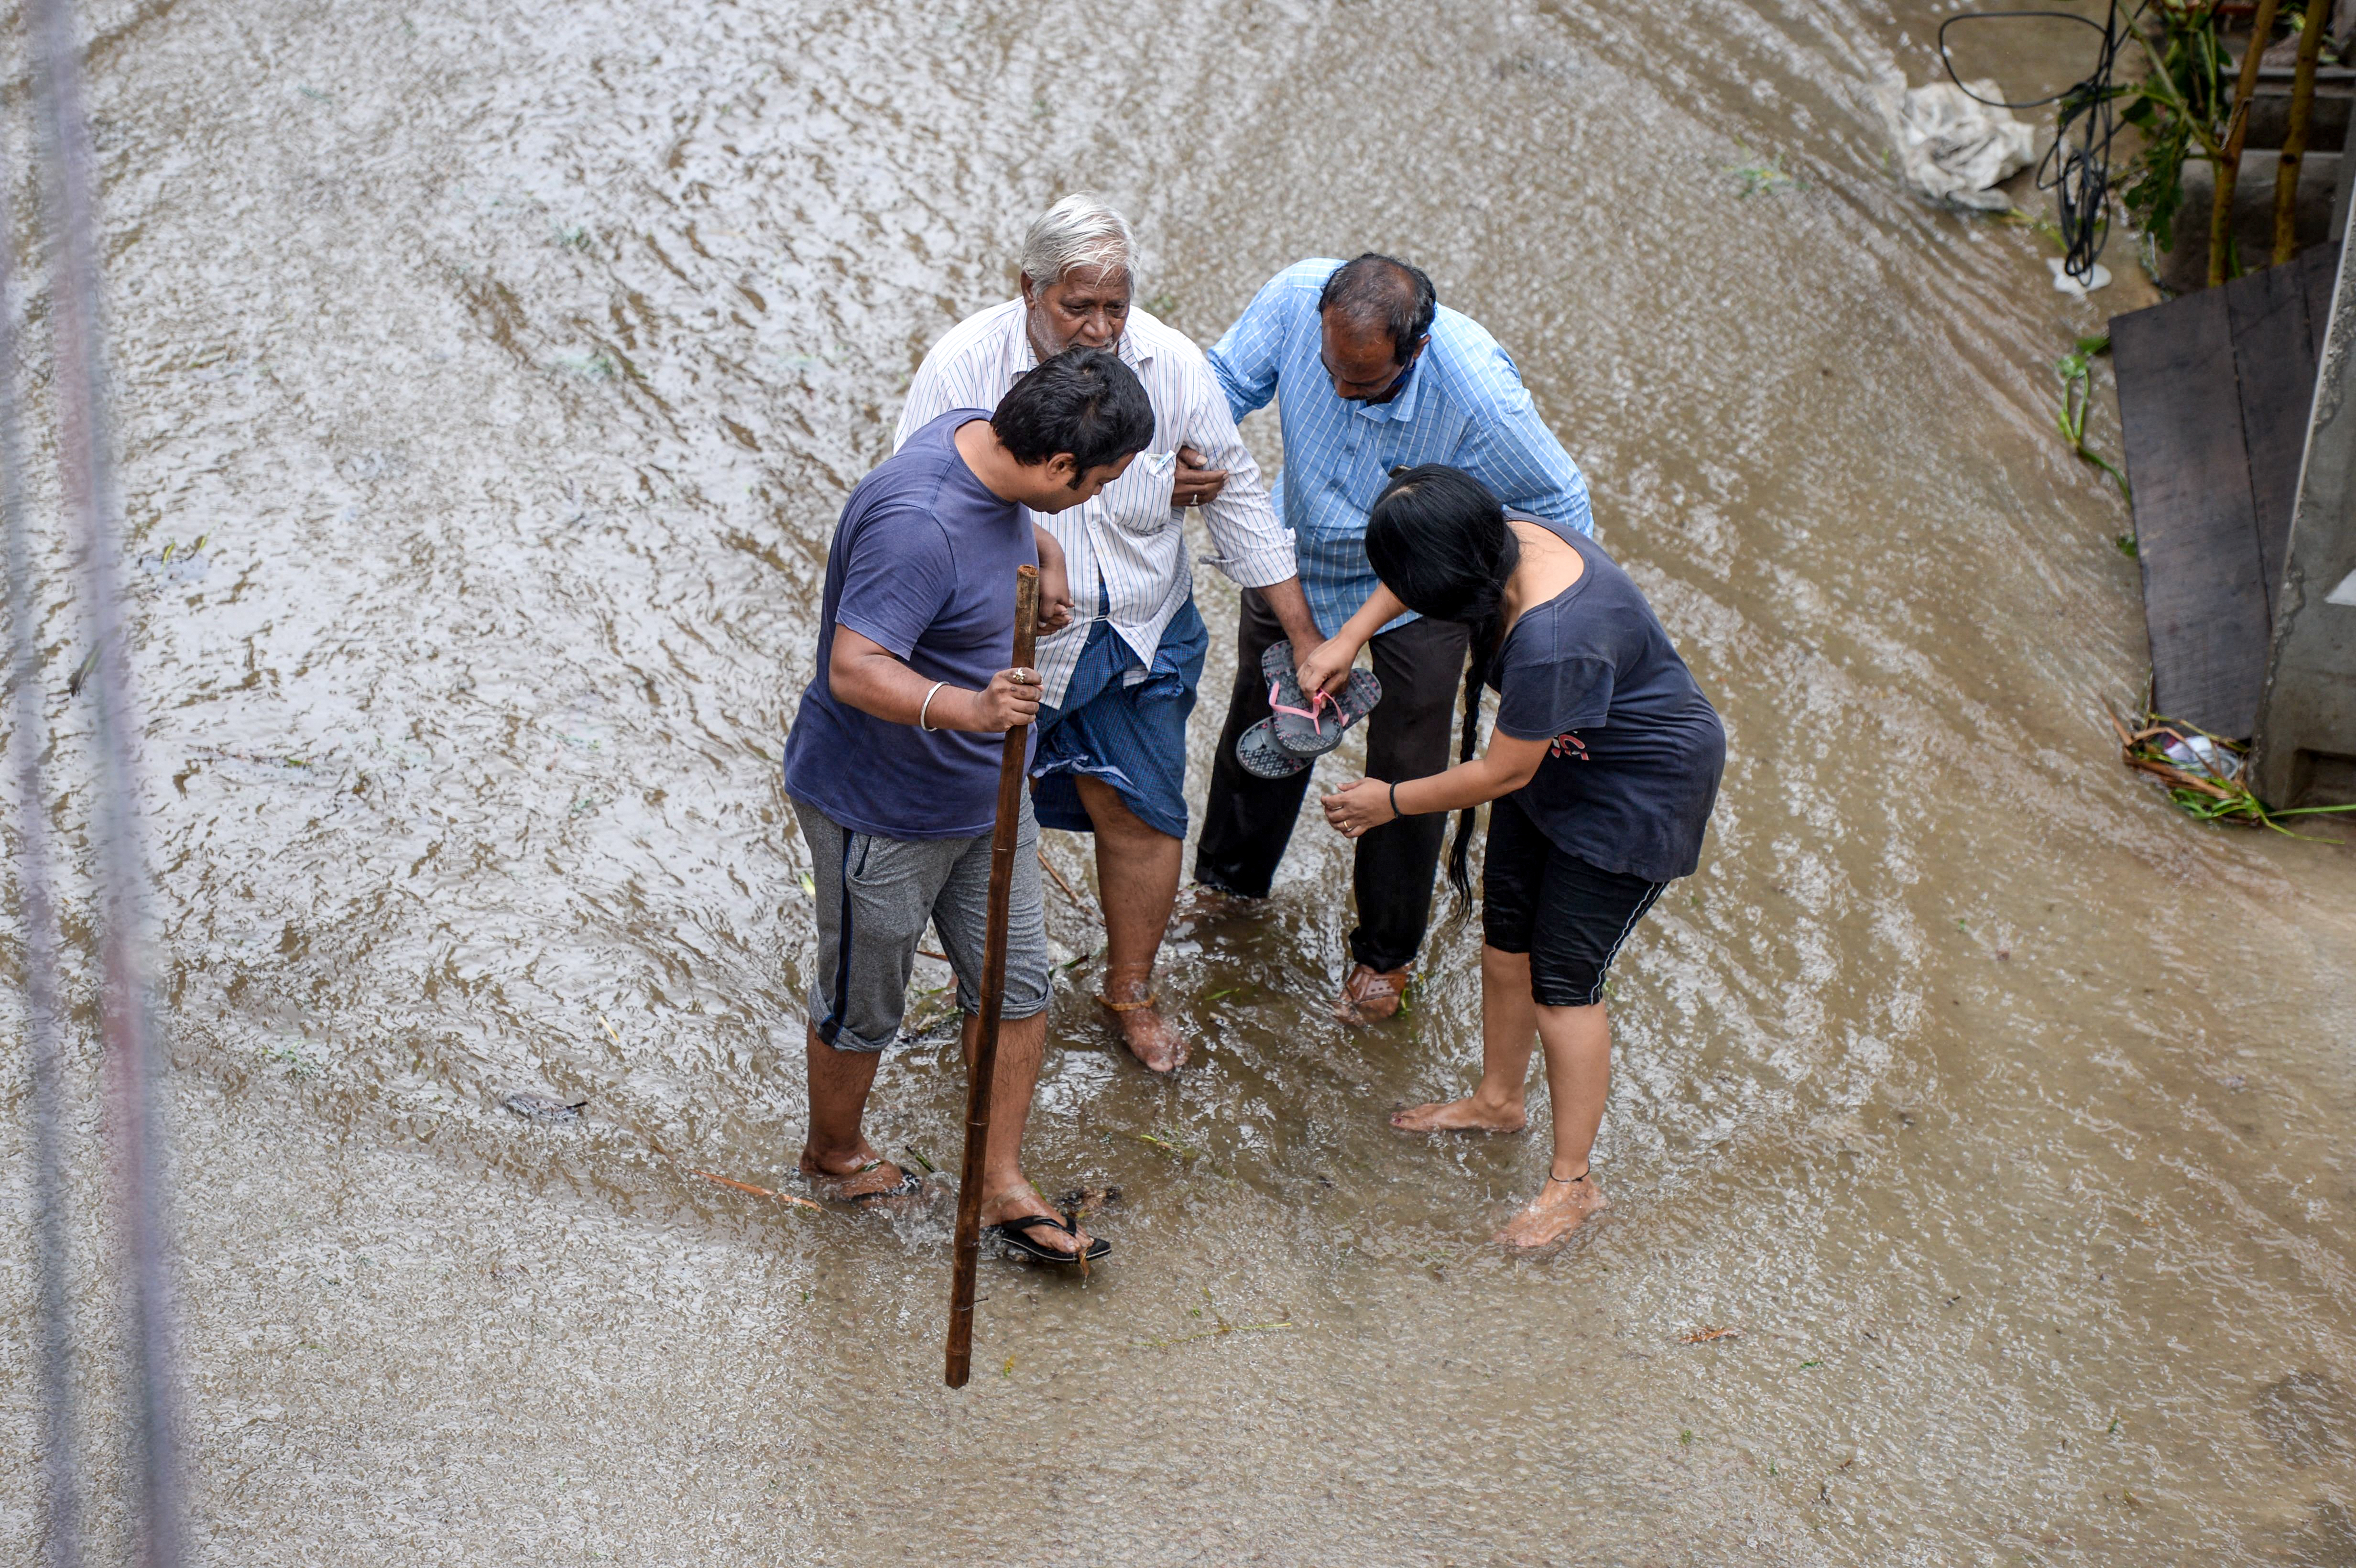 Indian metropolis Hyderabad inundated by highest rain in 100 years